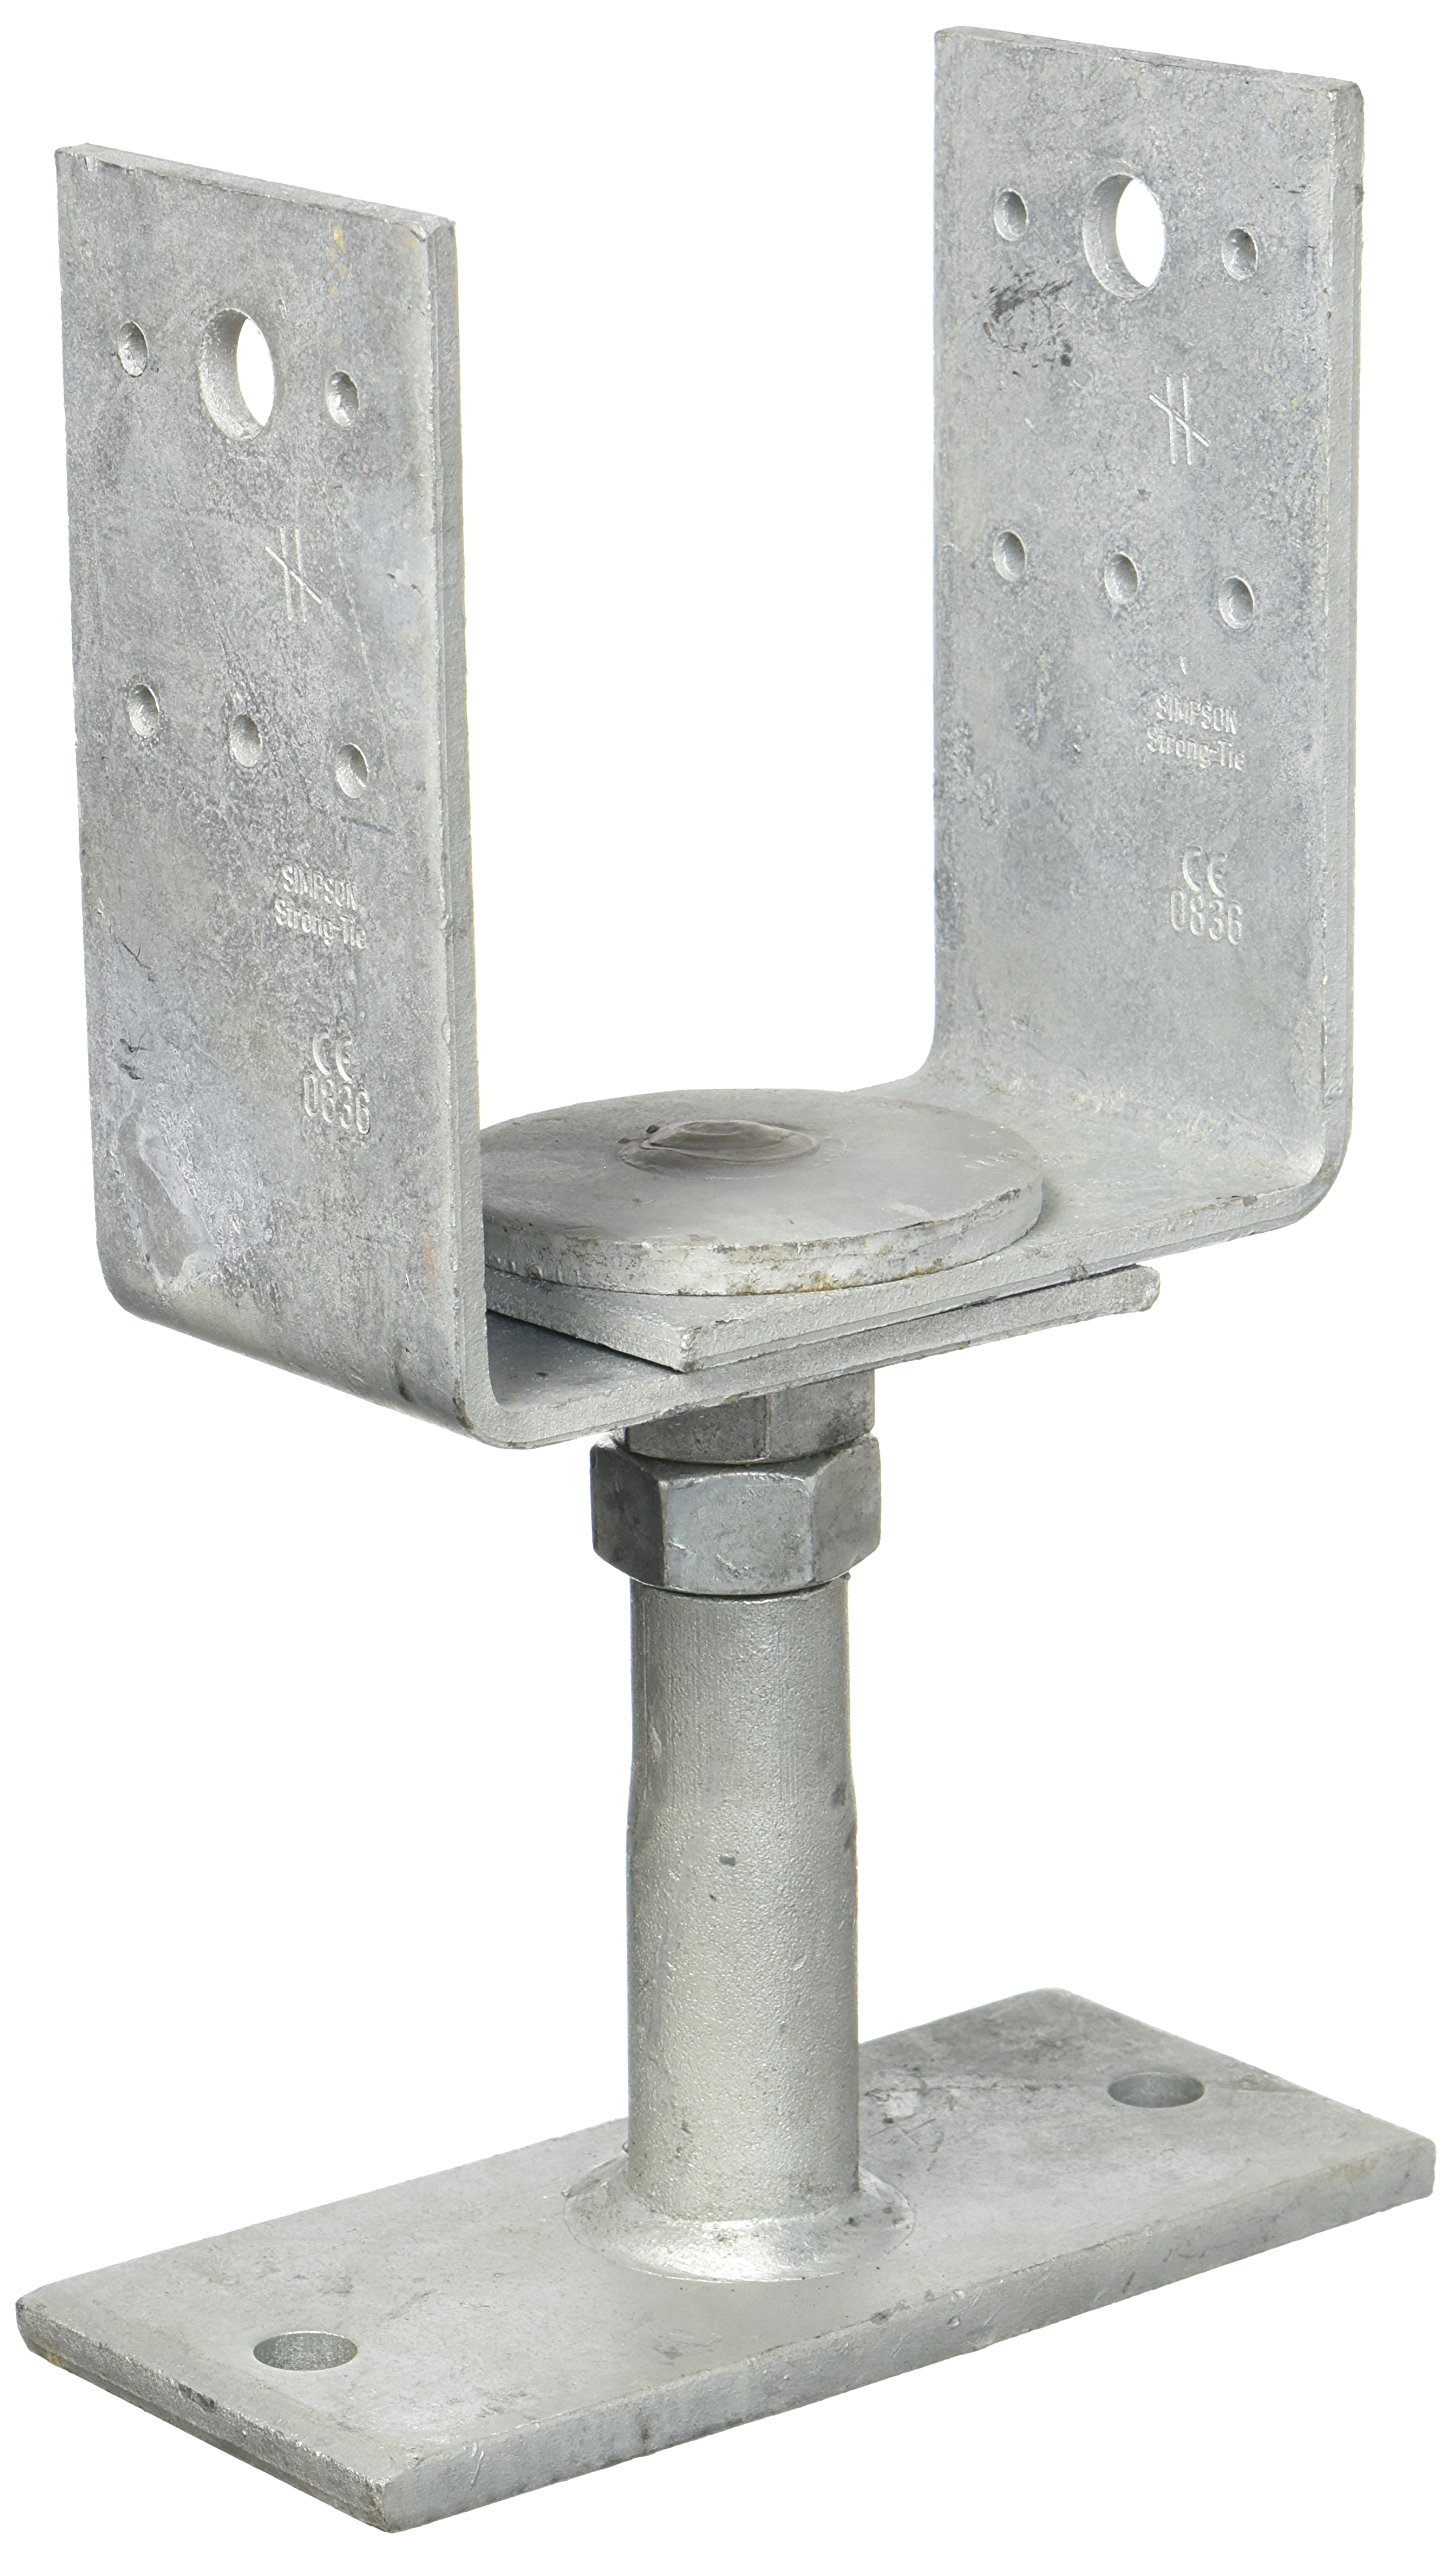 Simpson PVDB120G Column Base PVDB 120g/W Height Adjustable Hot-Dip Galvanised with Certification